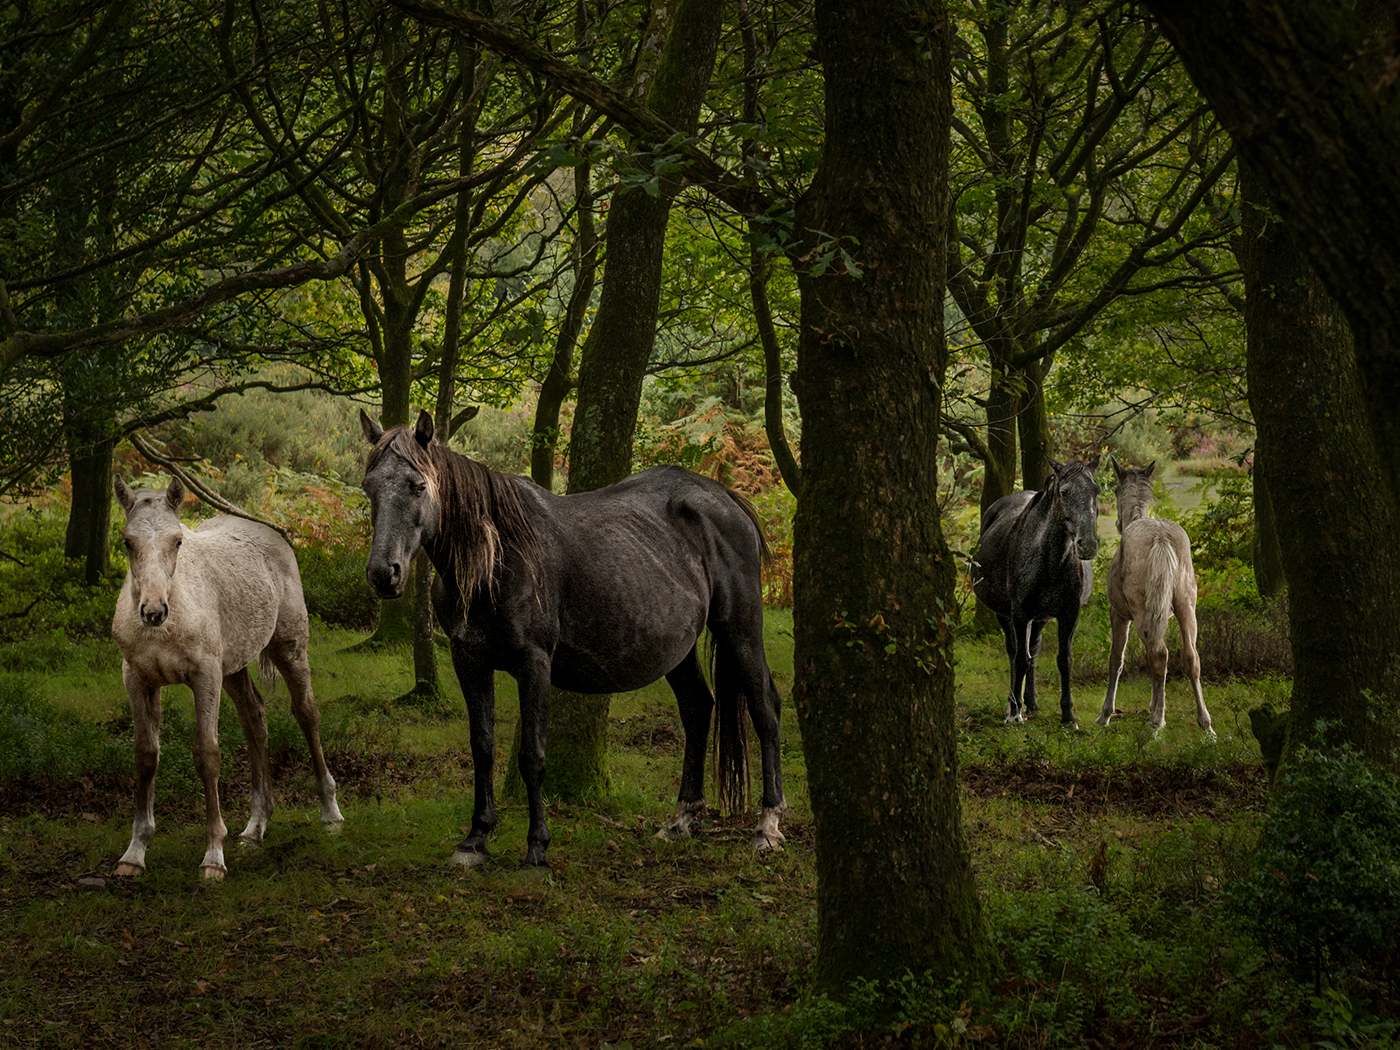 FILLIES AND FOALS IN THE QUANTOCK HILLS by Lois Webb